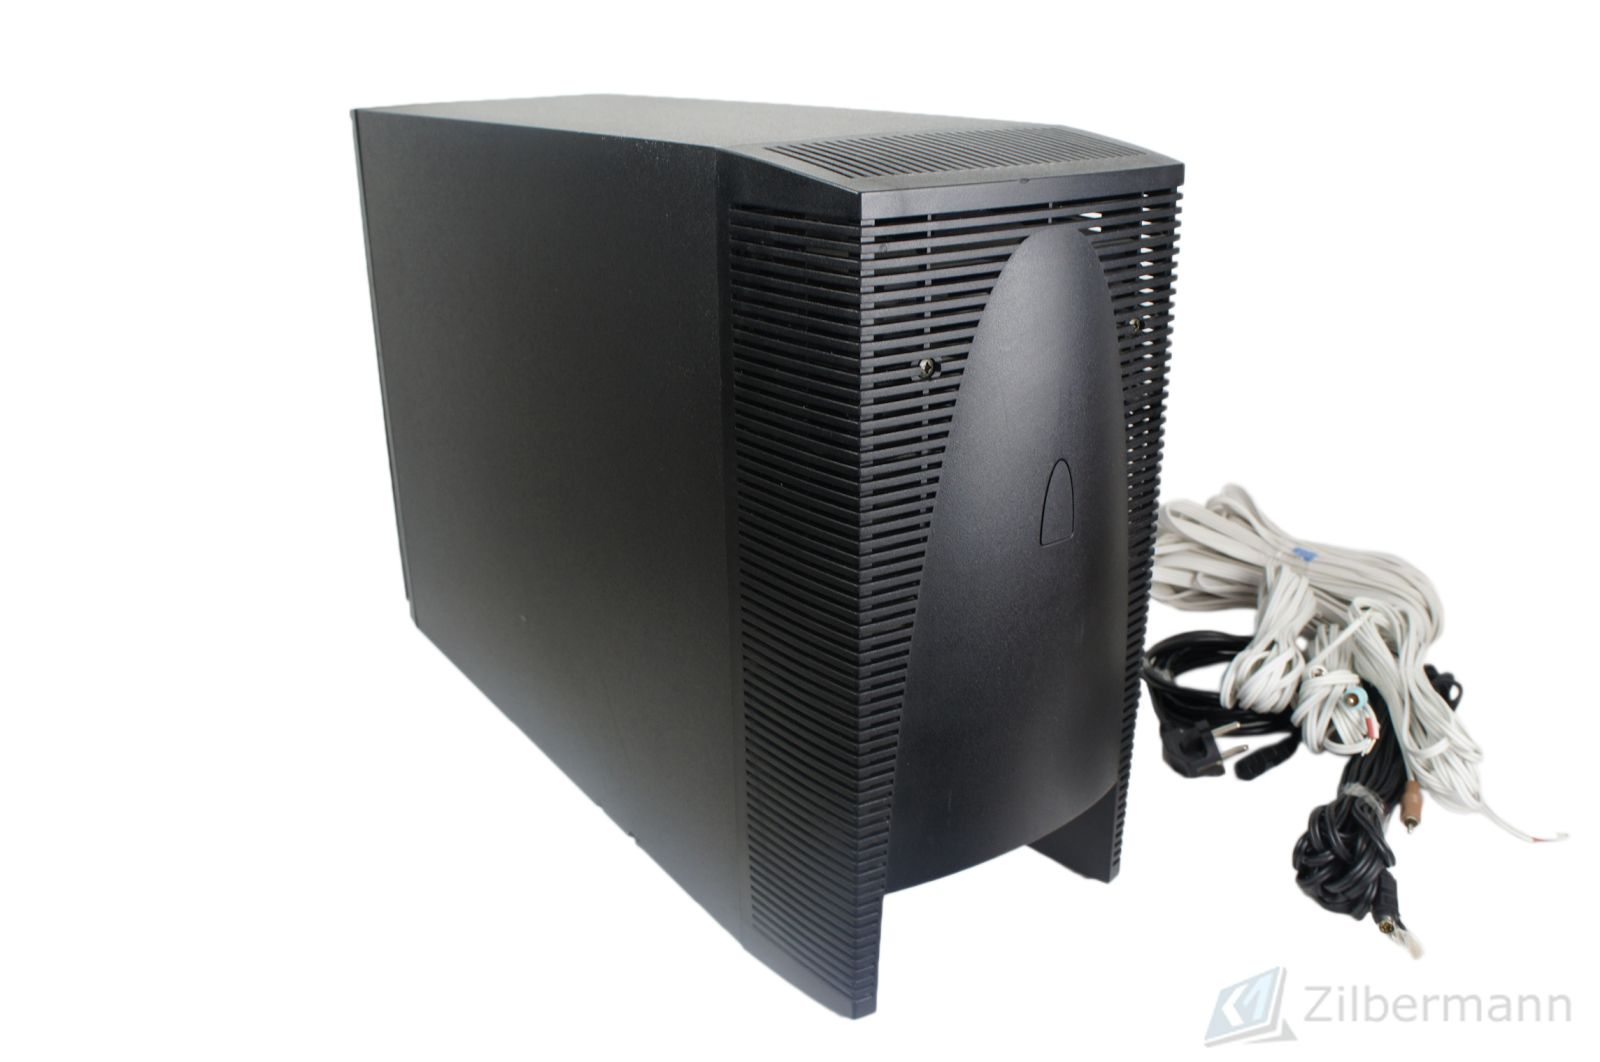 Bose_Lifestyle_28_PS28_PS_28_Powered_Heimkino-system_Subwoofer_04